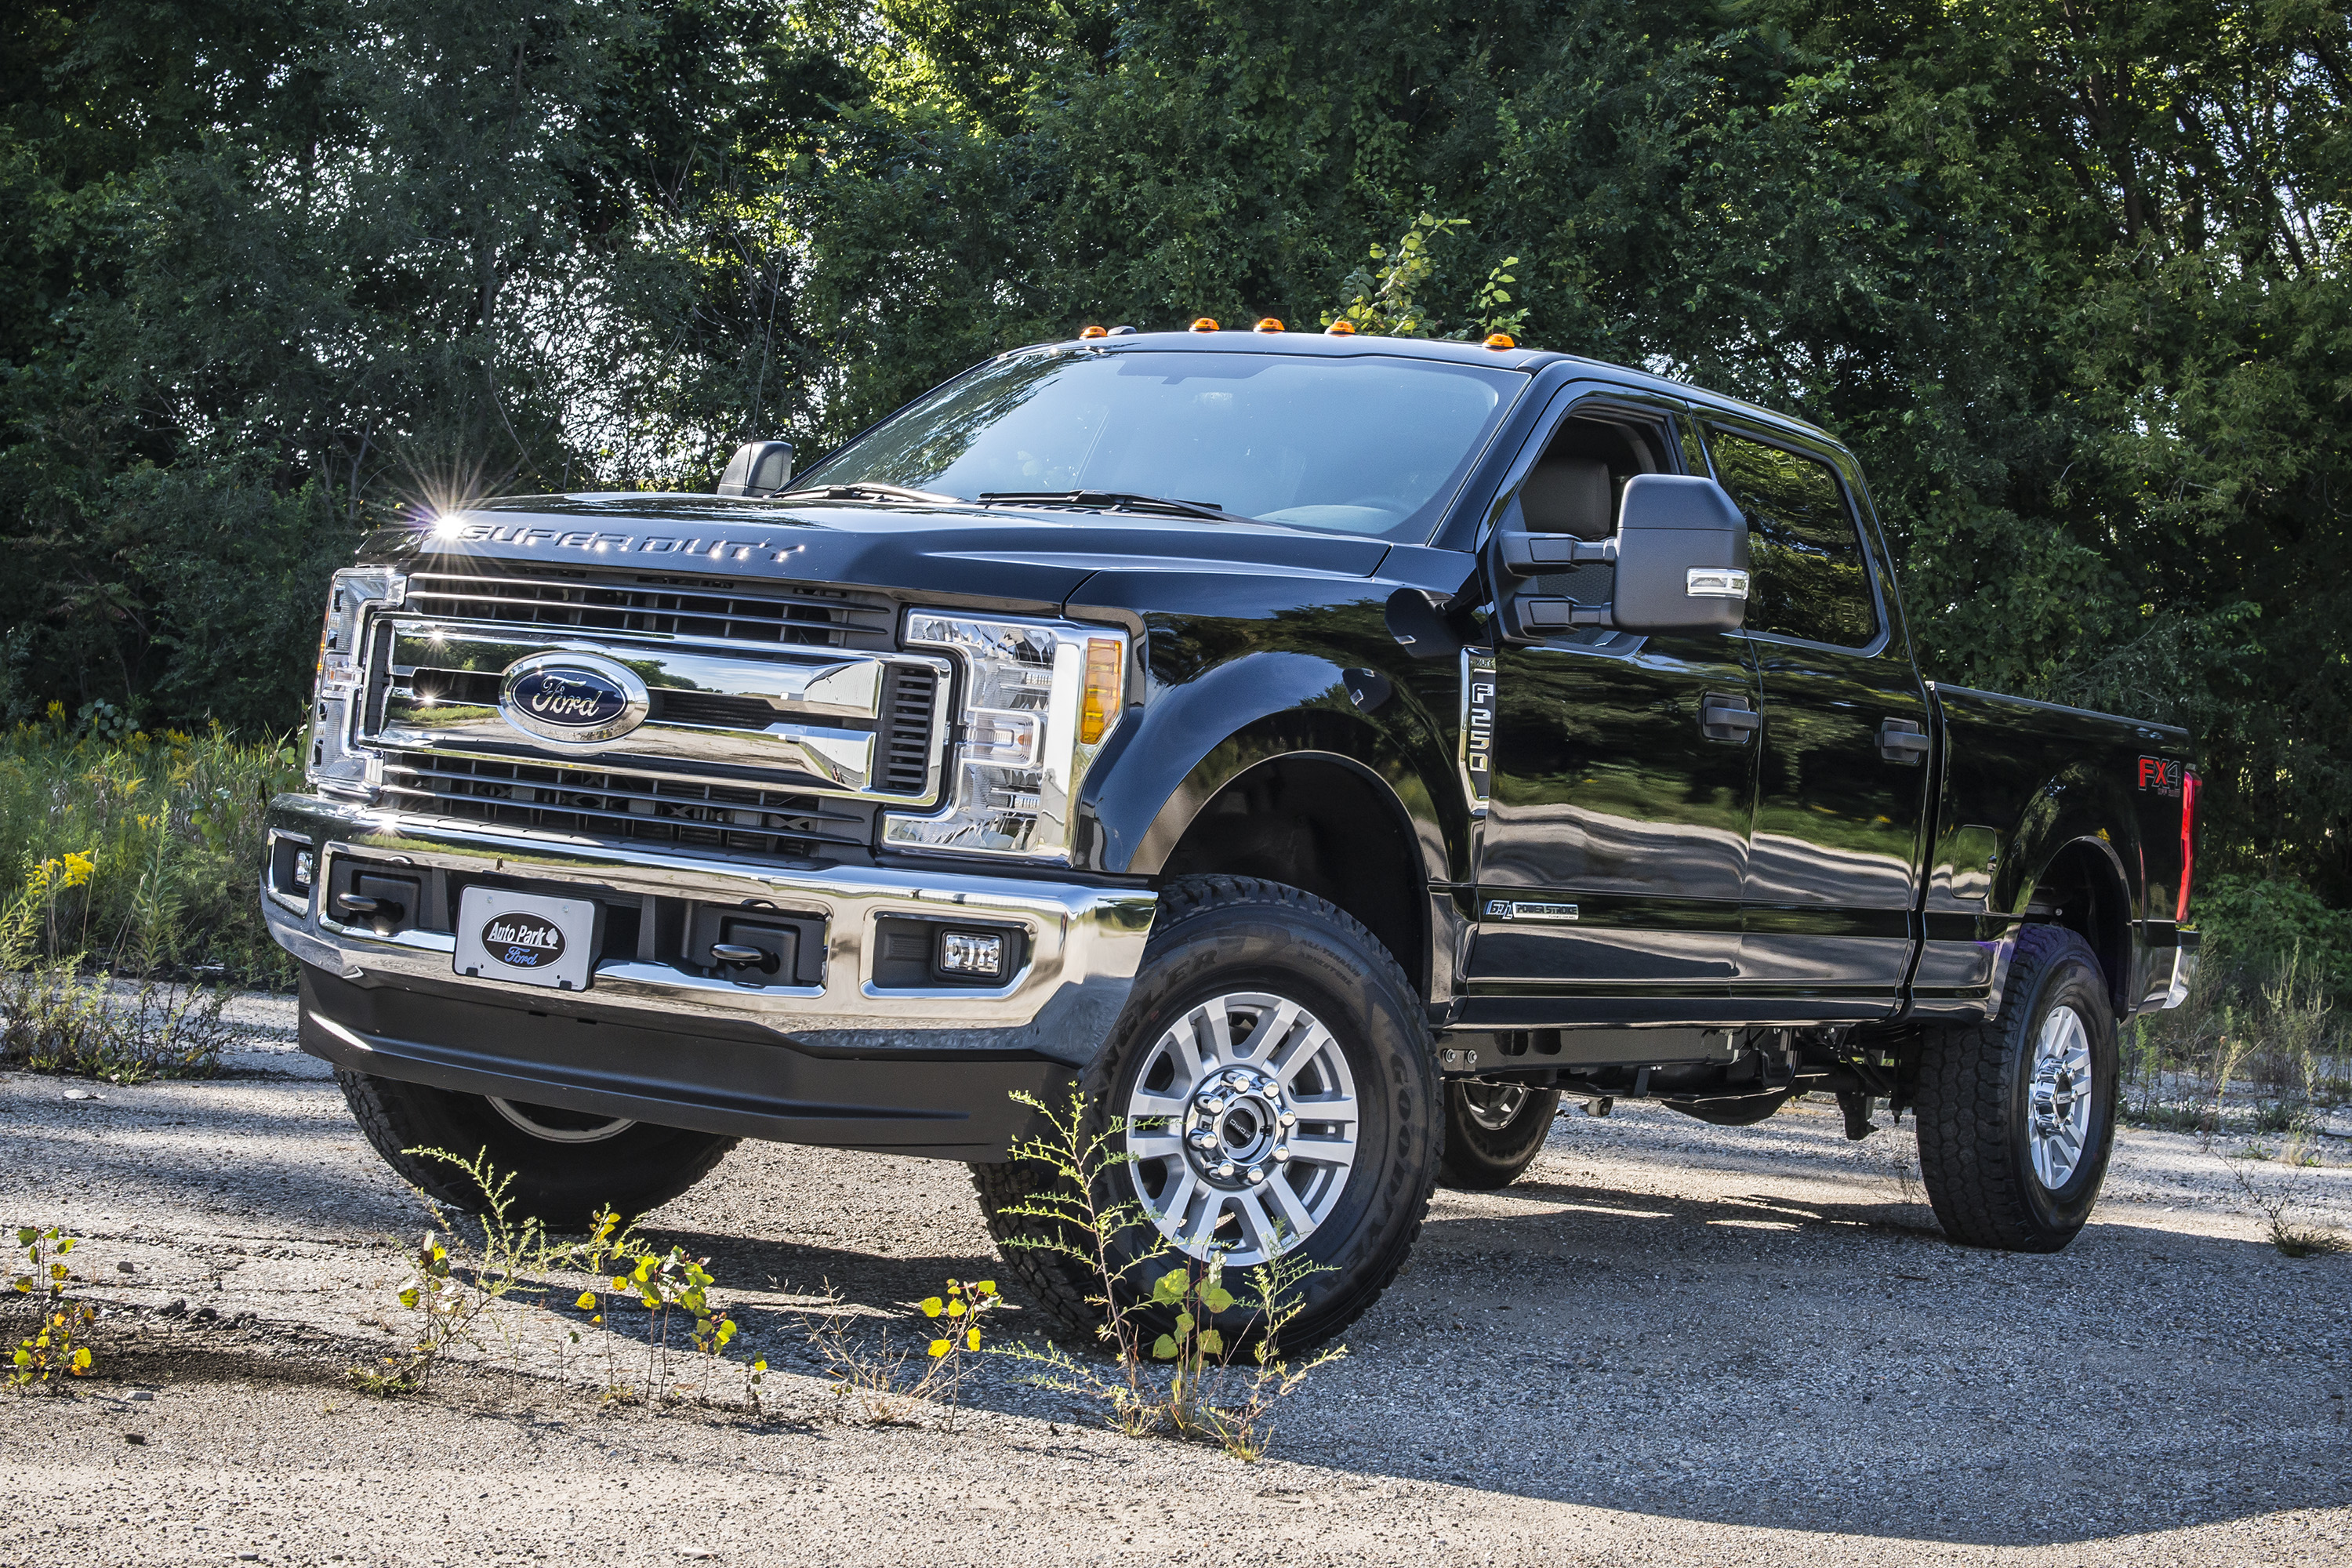 2017 Powerstroke Specs >> 2017 Ford F250 | 2017 - 2018 Best Cars Reviews